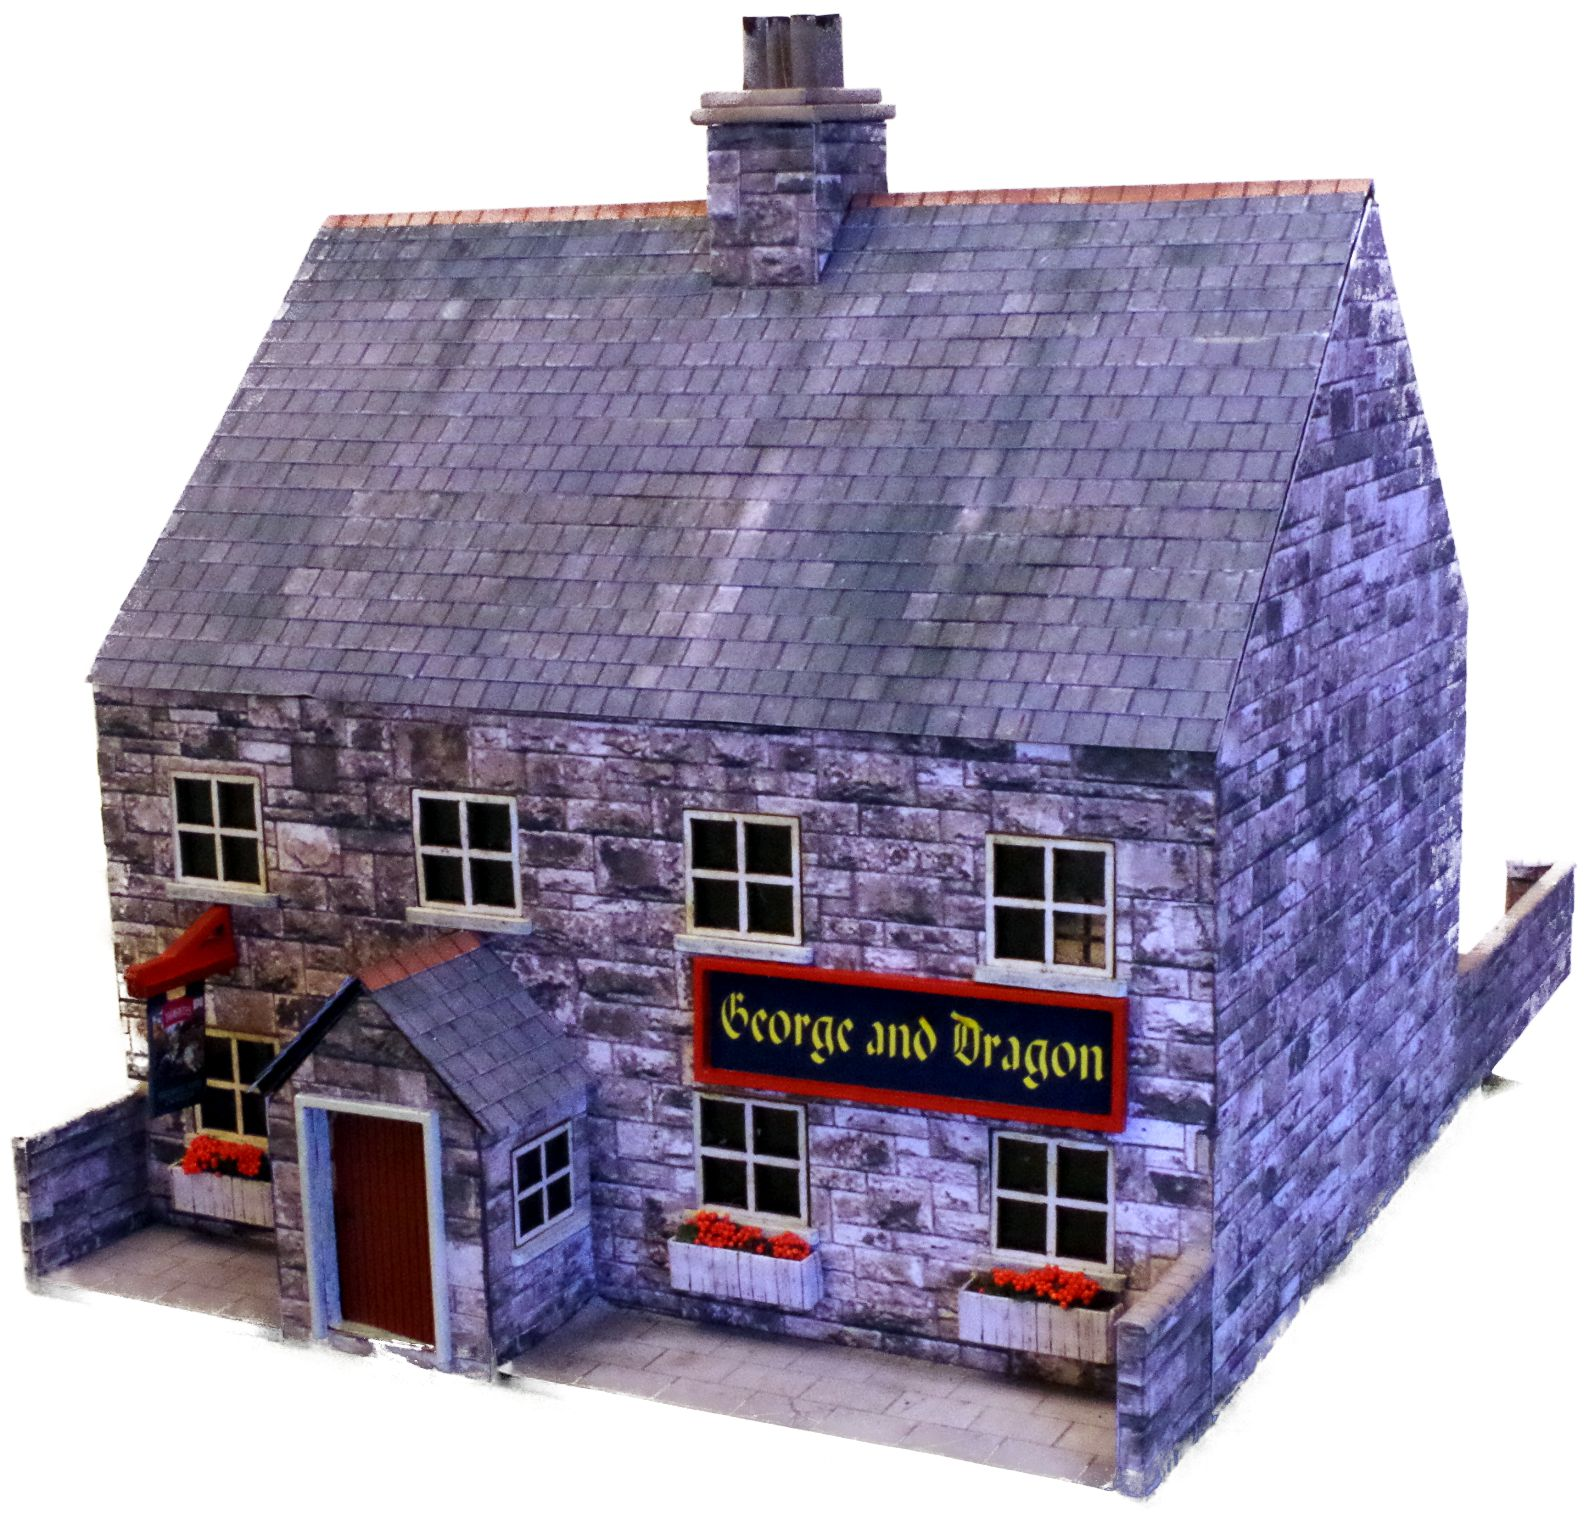 28mm pub George and dragon 2